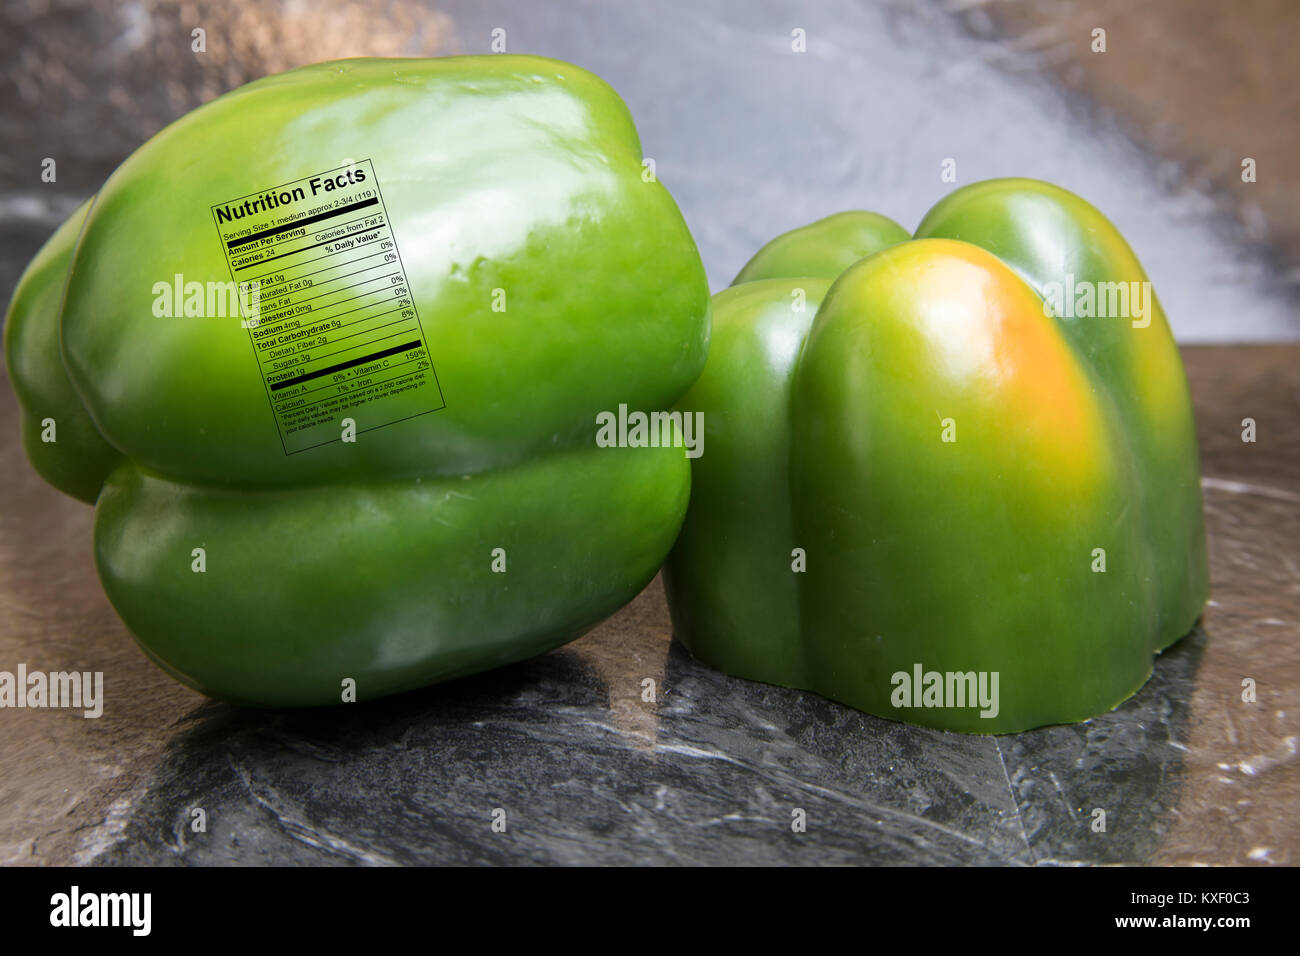 Fresh Whole Sweet Green Peppers On Black Tile With Nutrition Label Stock Photo 171203987 Alamy